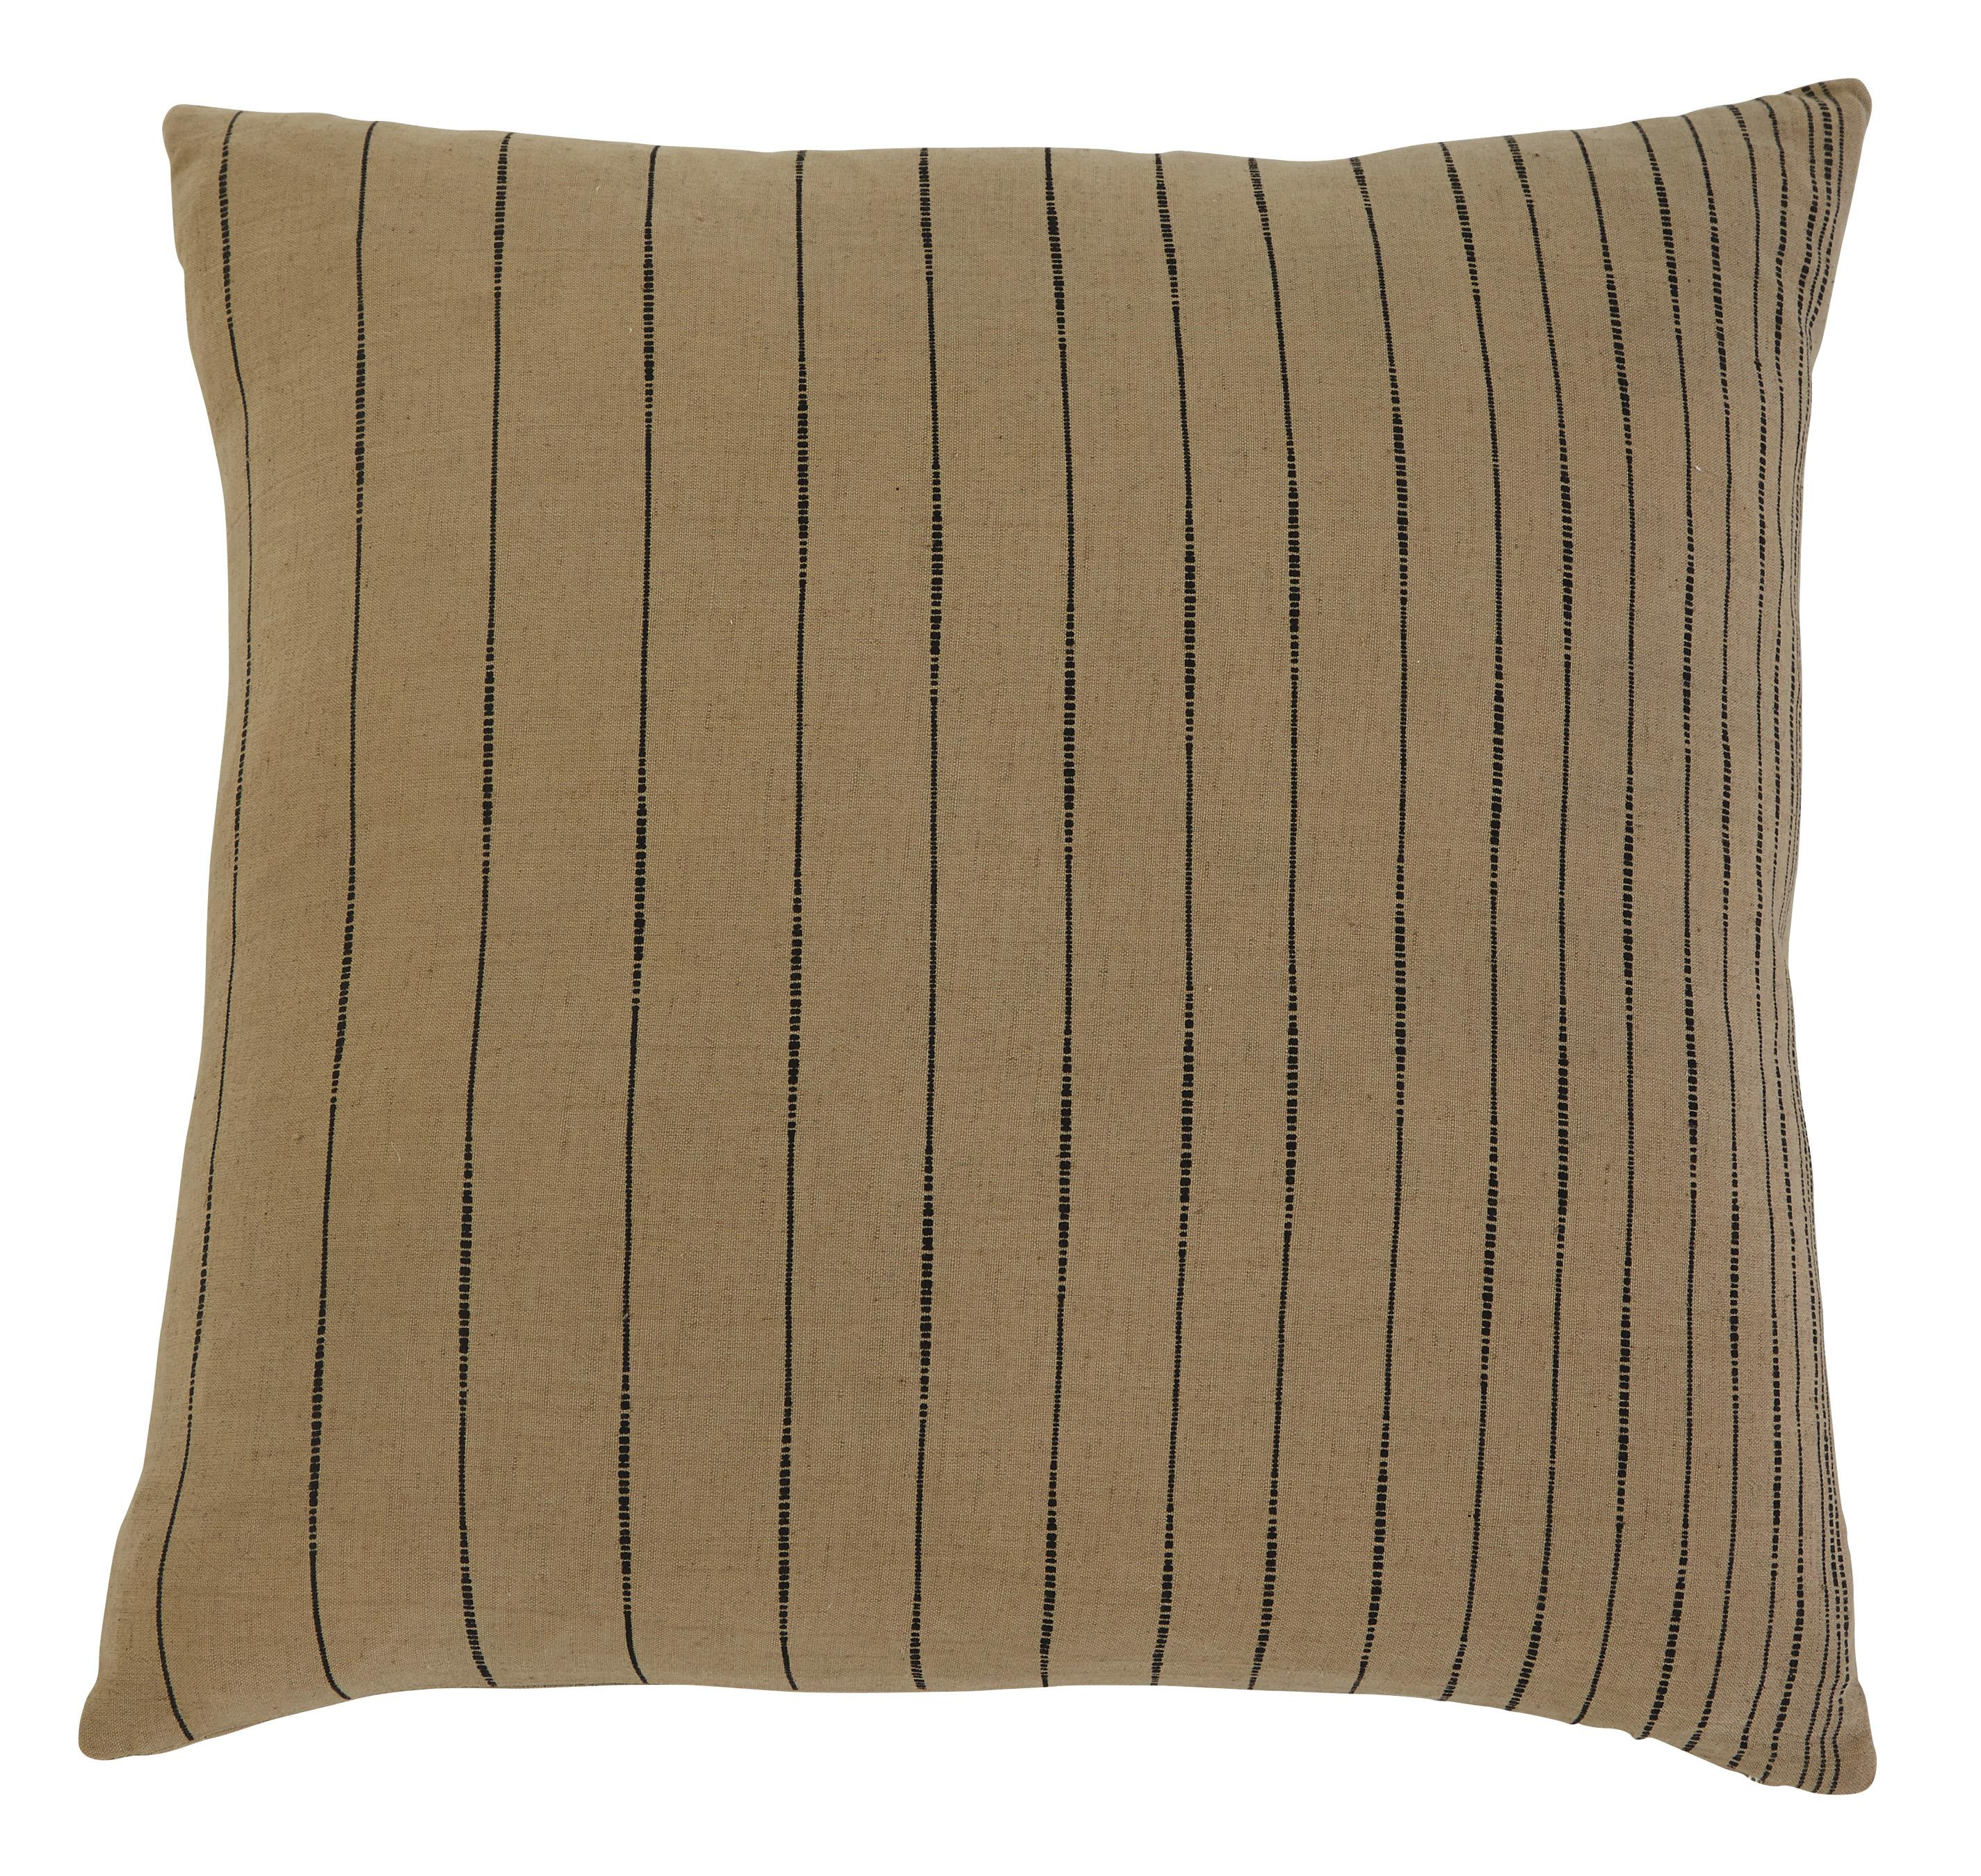 Signature Design by Ashley Pillows Stitched - Khaki Pillow - Item Number: A1000301P